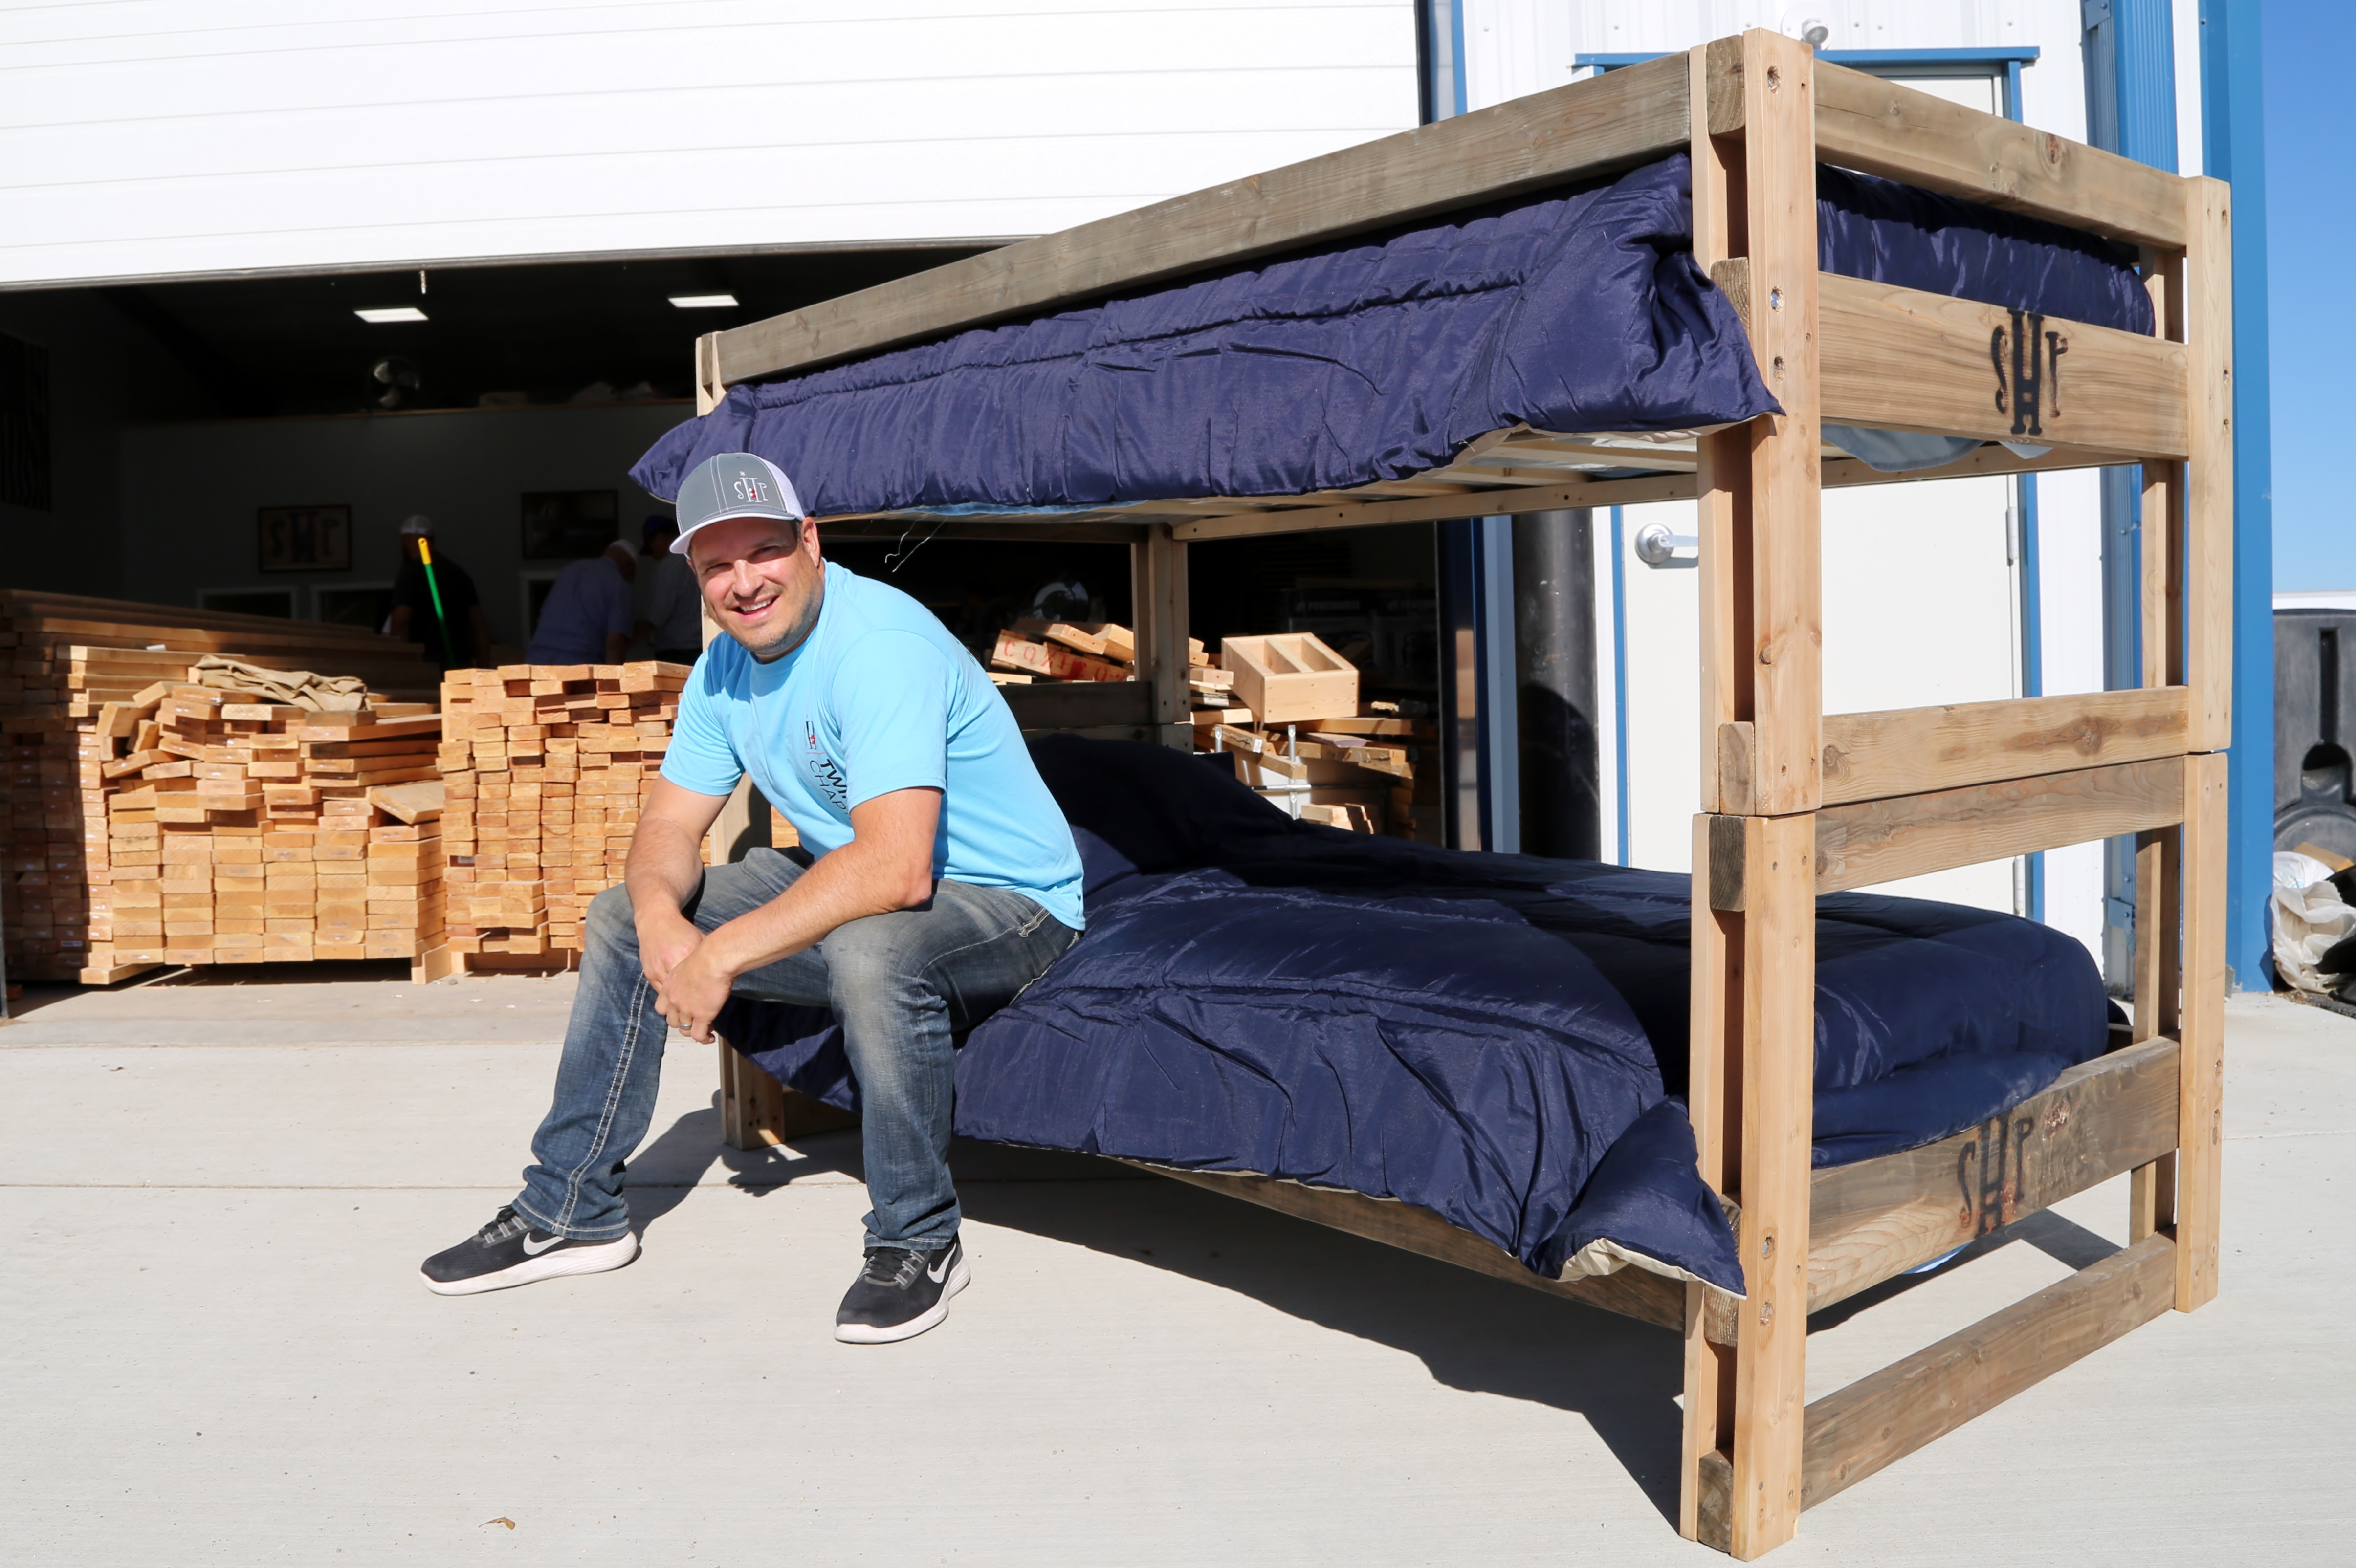 Black girl white guy sex on bunk bed He Quit His High Paying Job To Build Beds For Kids Who Sleep On The Floor Cnn